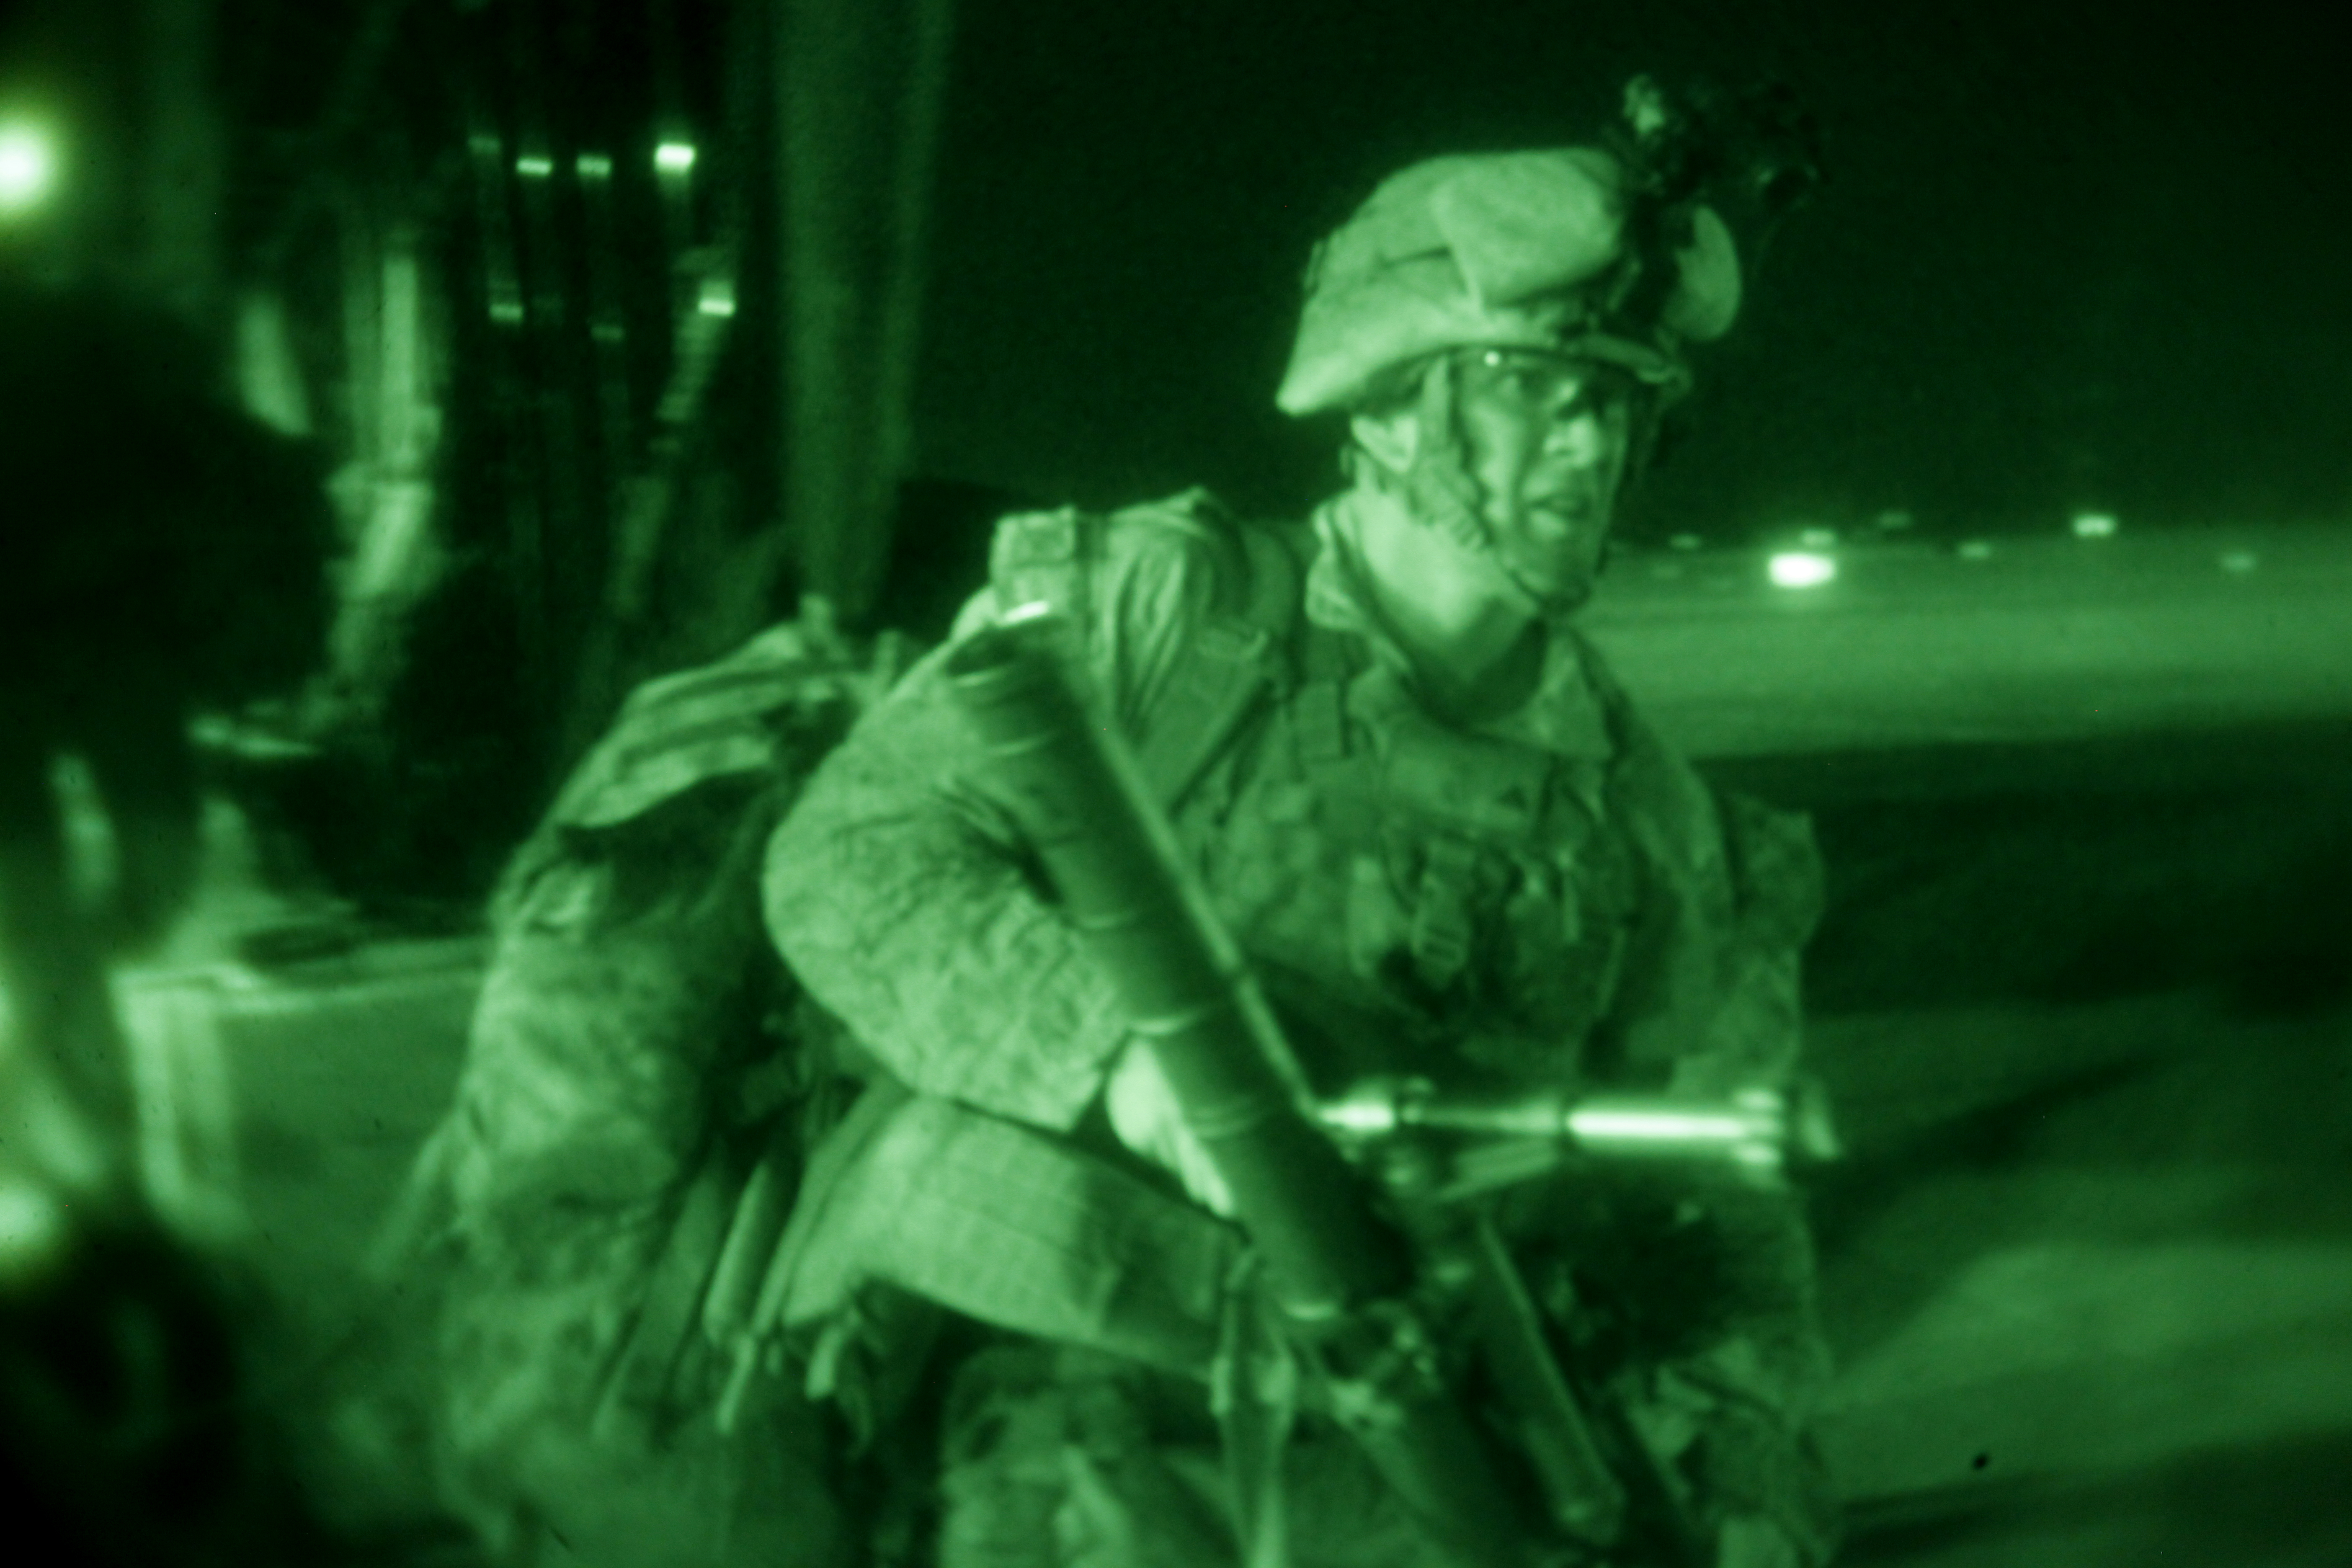 Marines in action in Iraq using night vision goggles